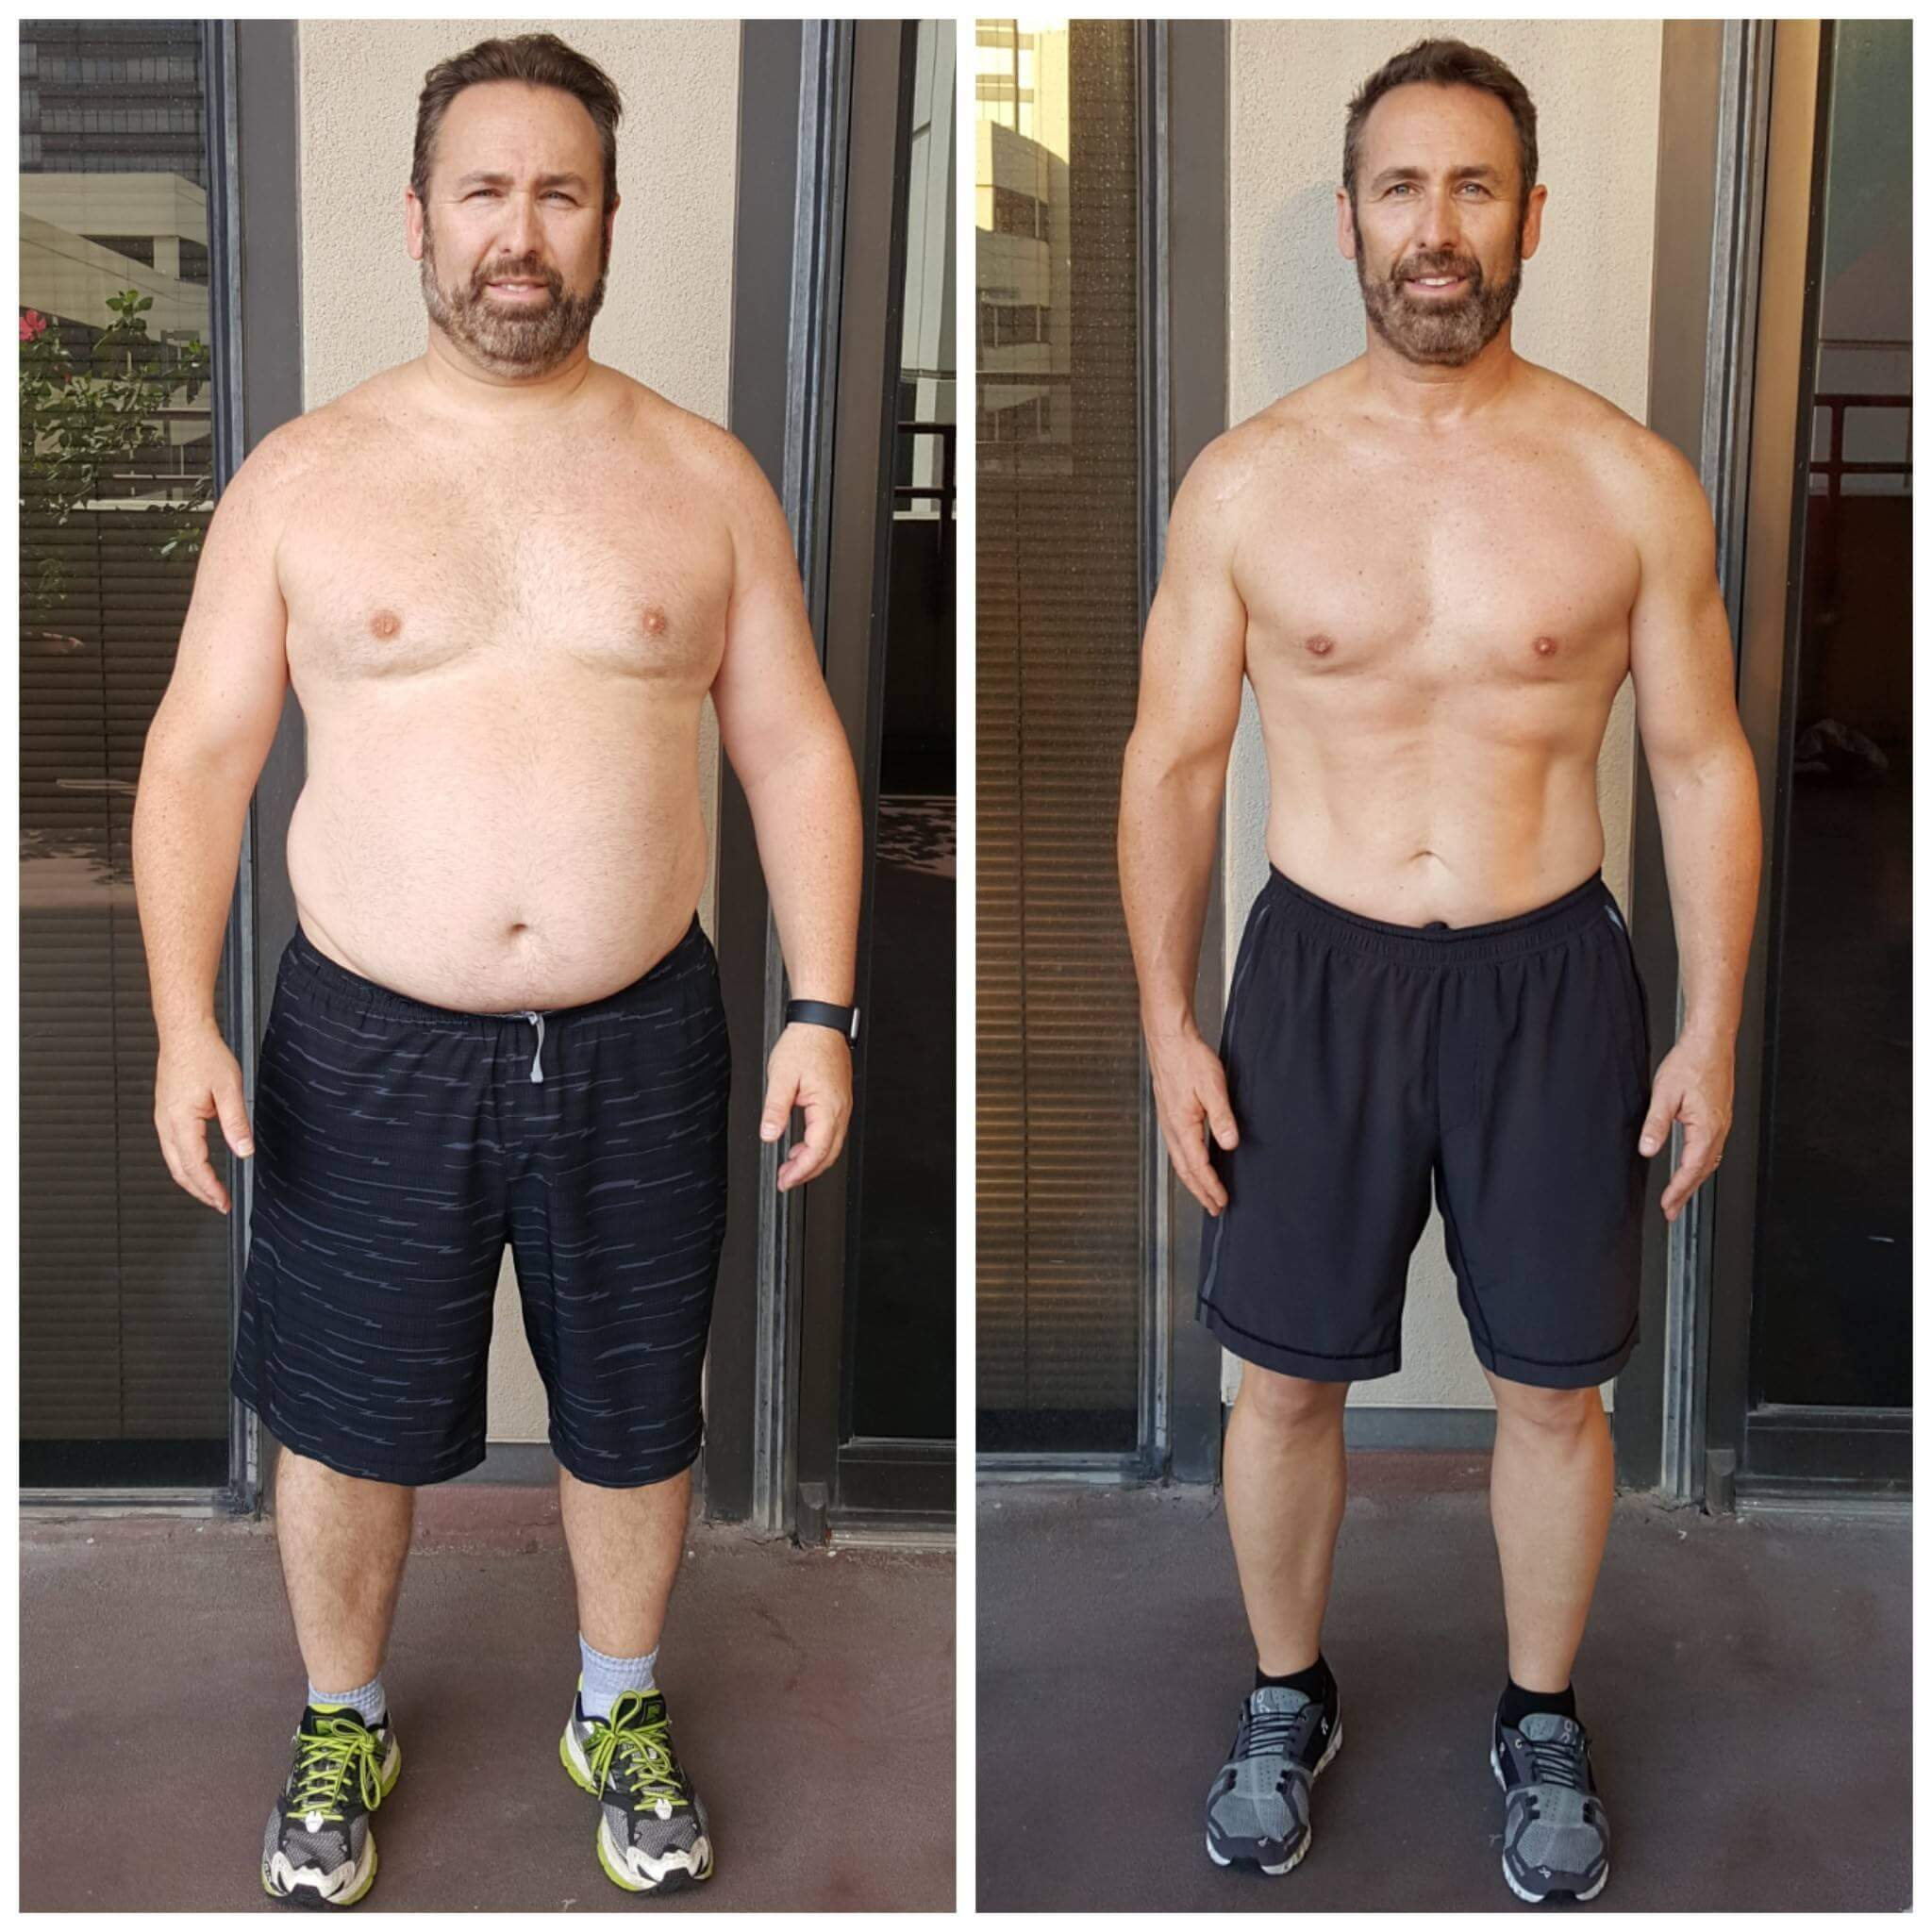 Brian weight loss personal trainer Dallas